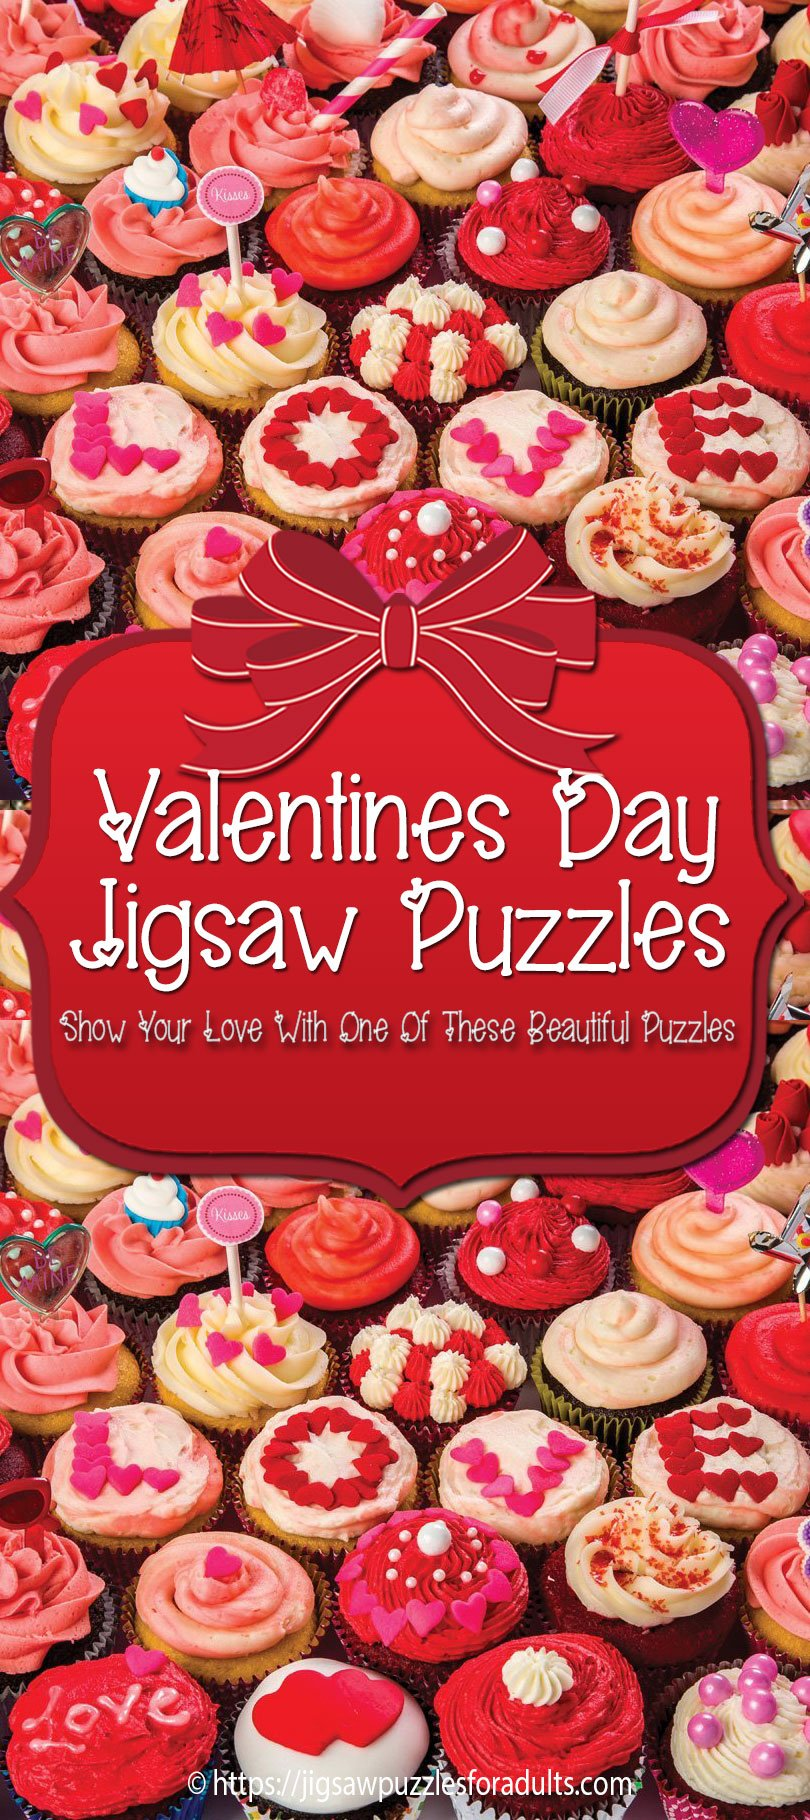 Valentines Day Jigsaw Puzzles